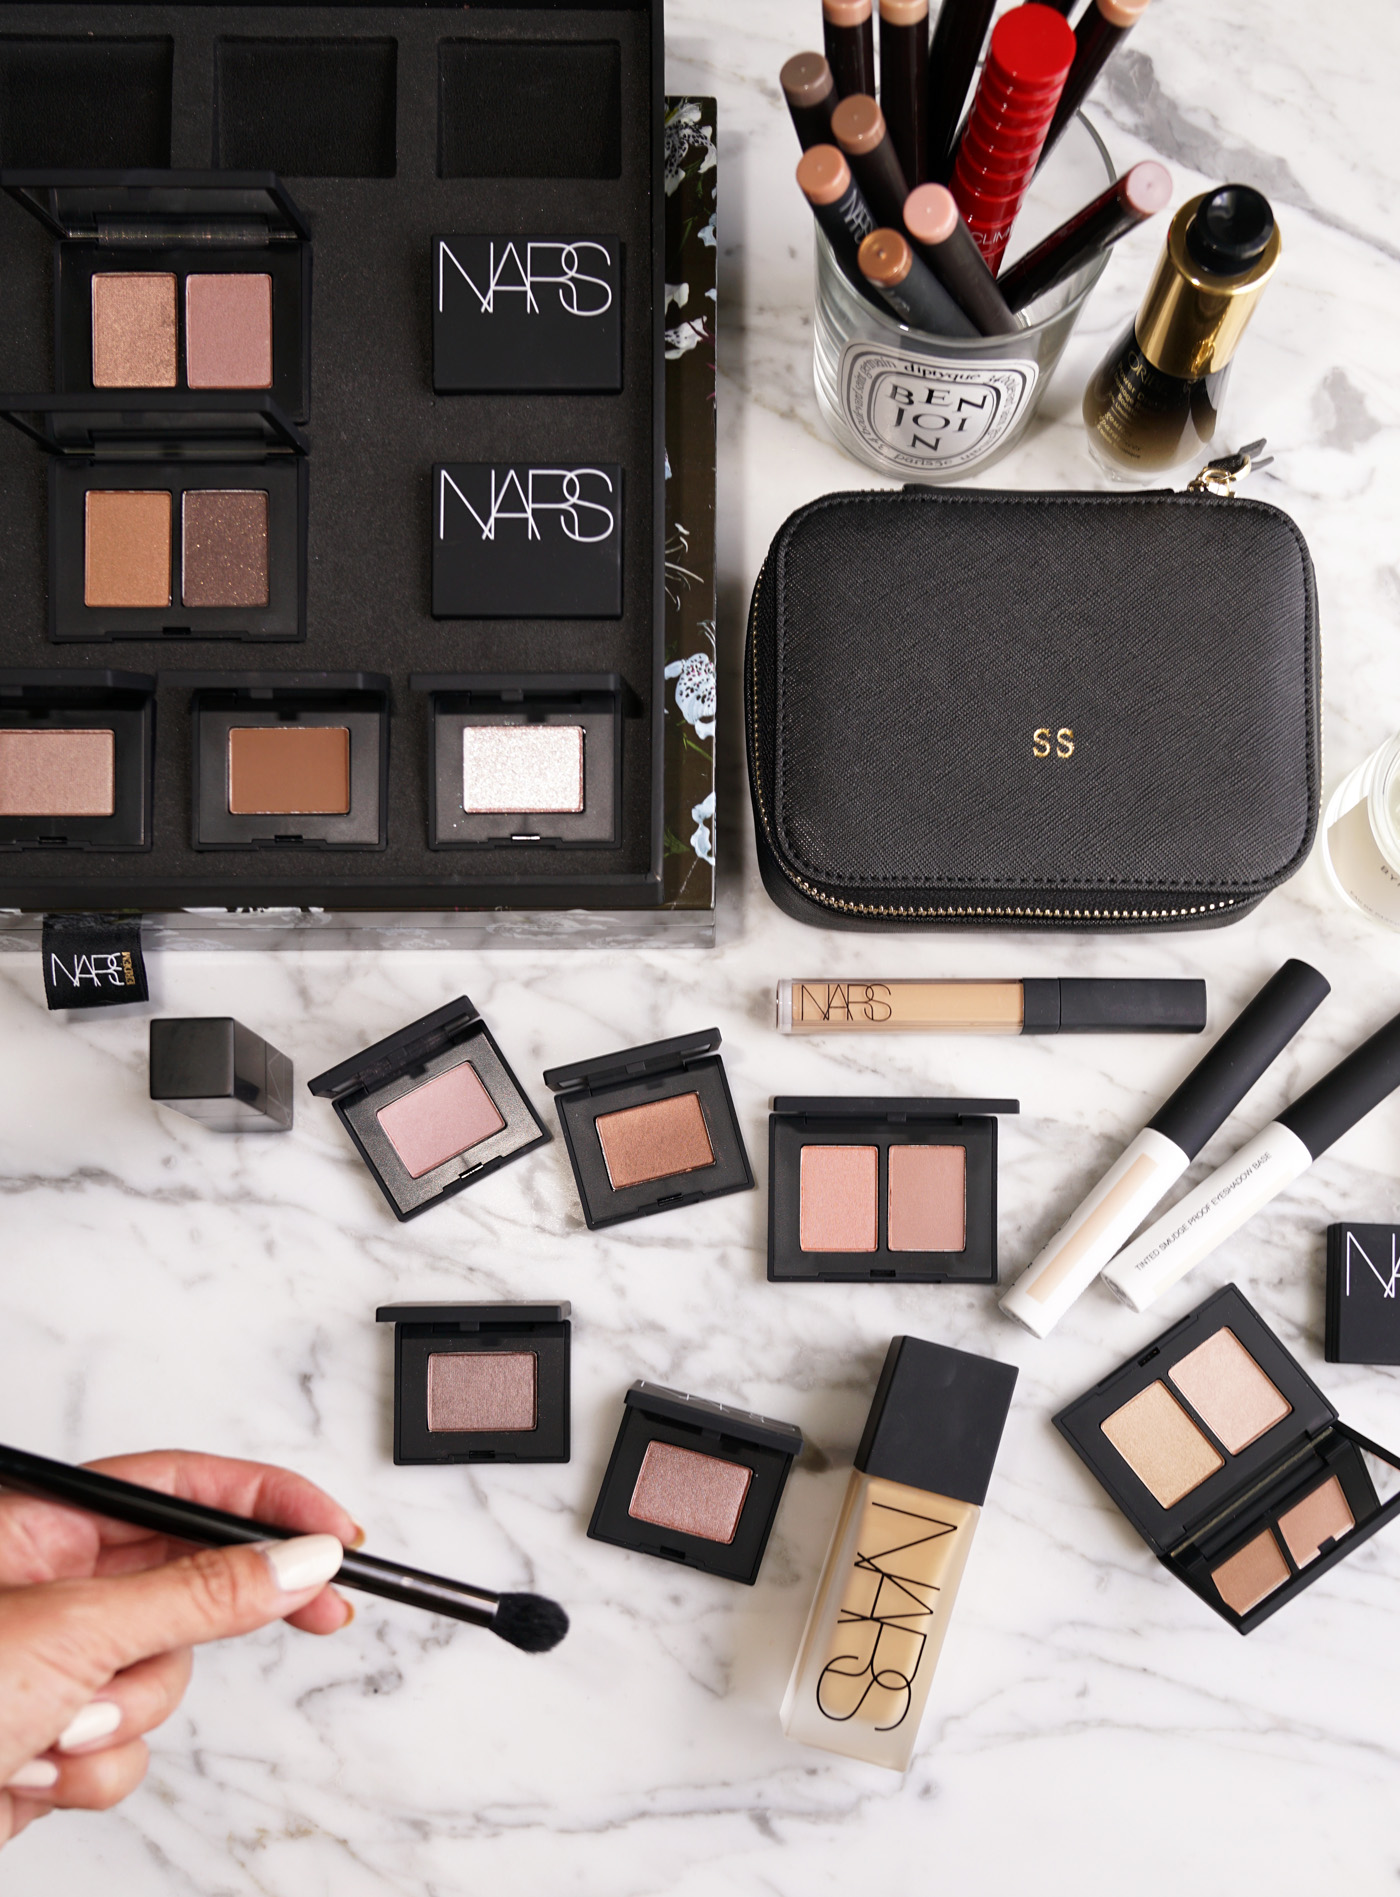 NARS Eyeshadow Single and Duo relaunch